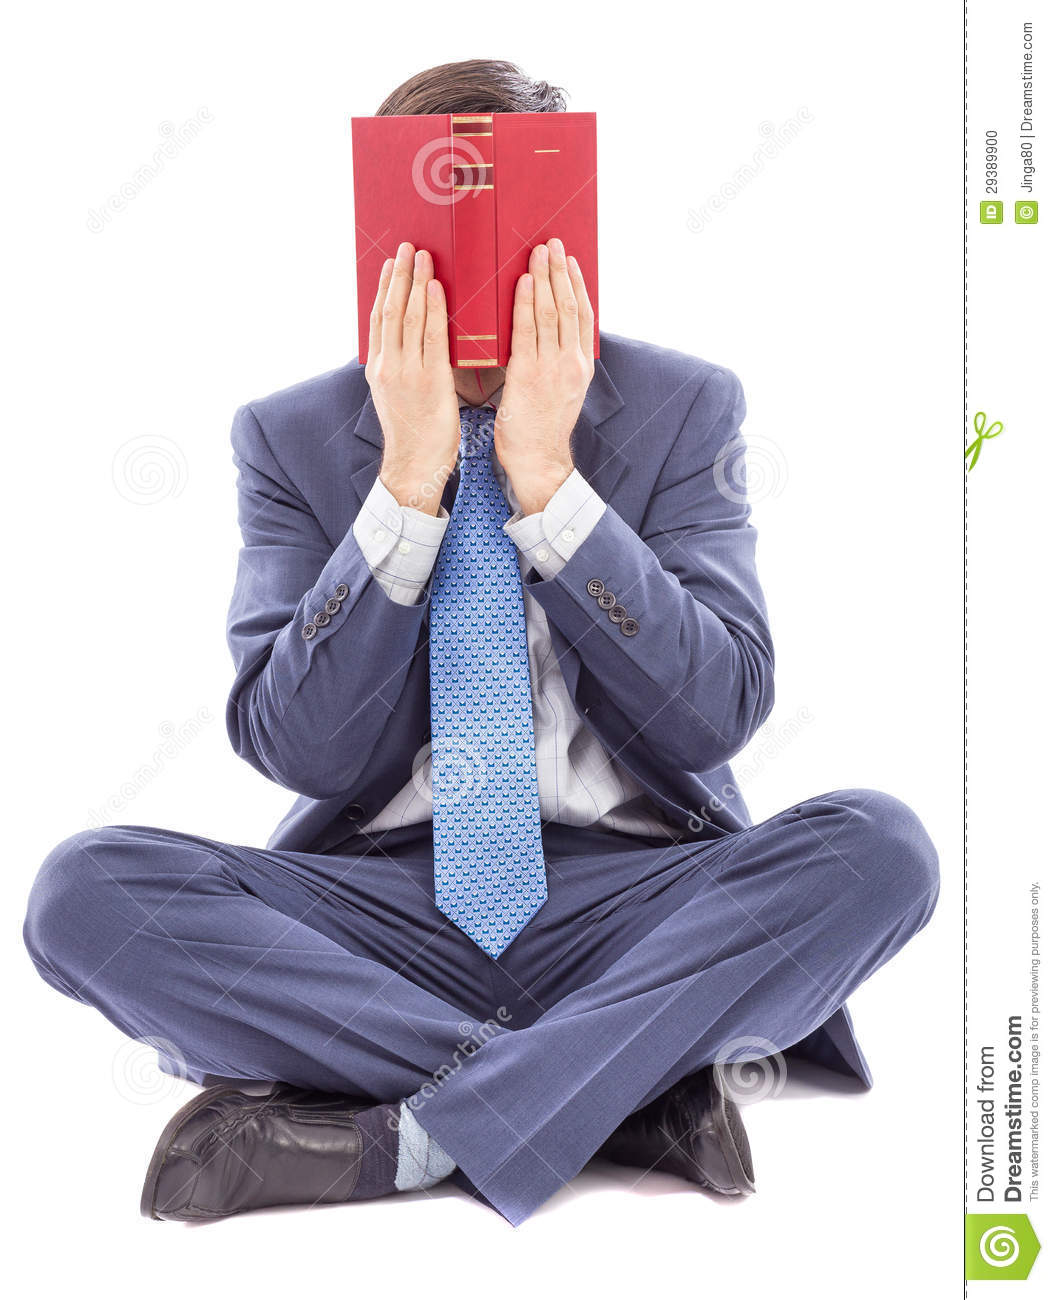 Book Covering Face : Business man sitting cross legged covering his face with a